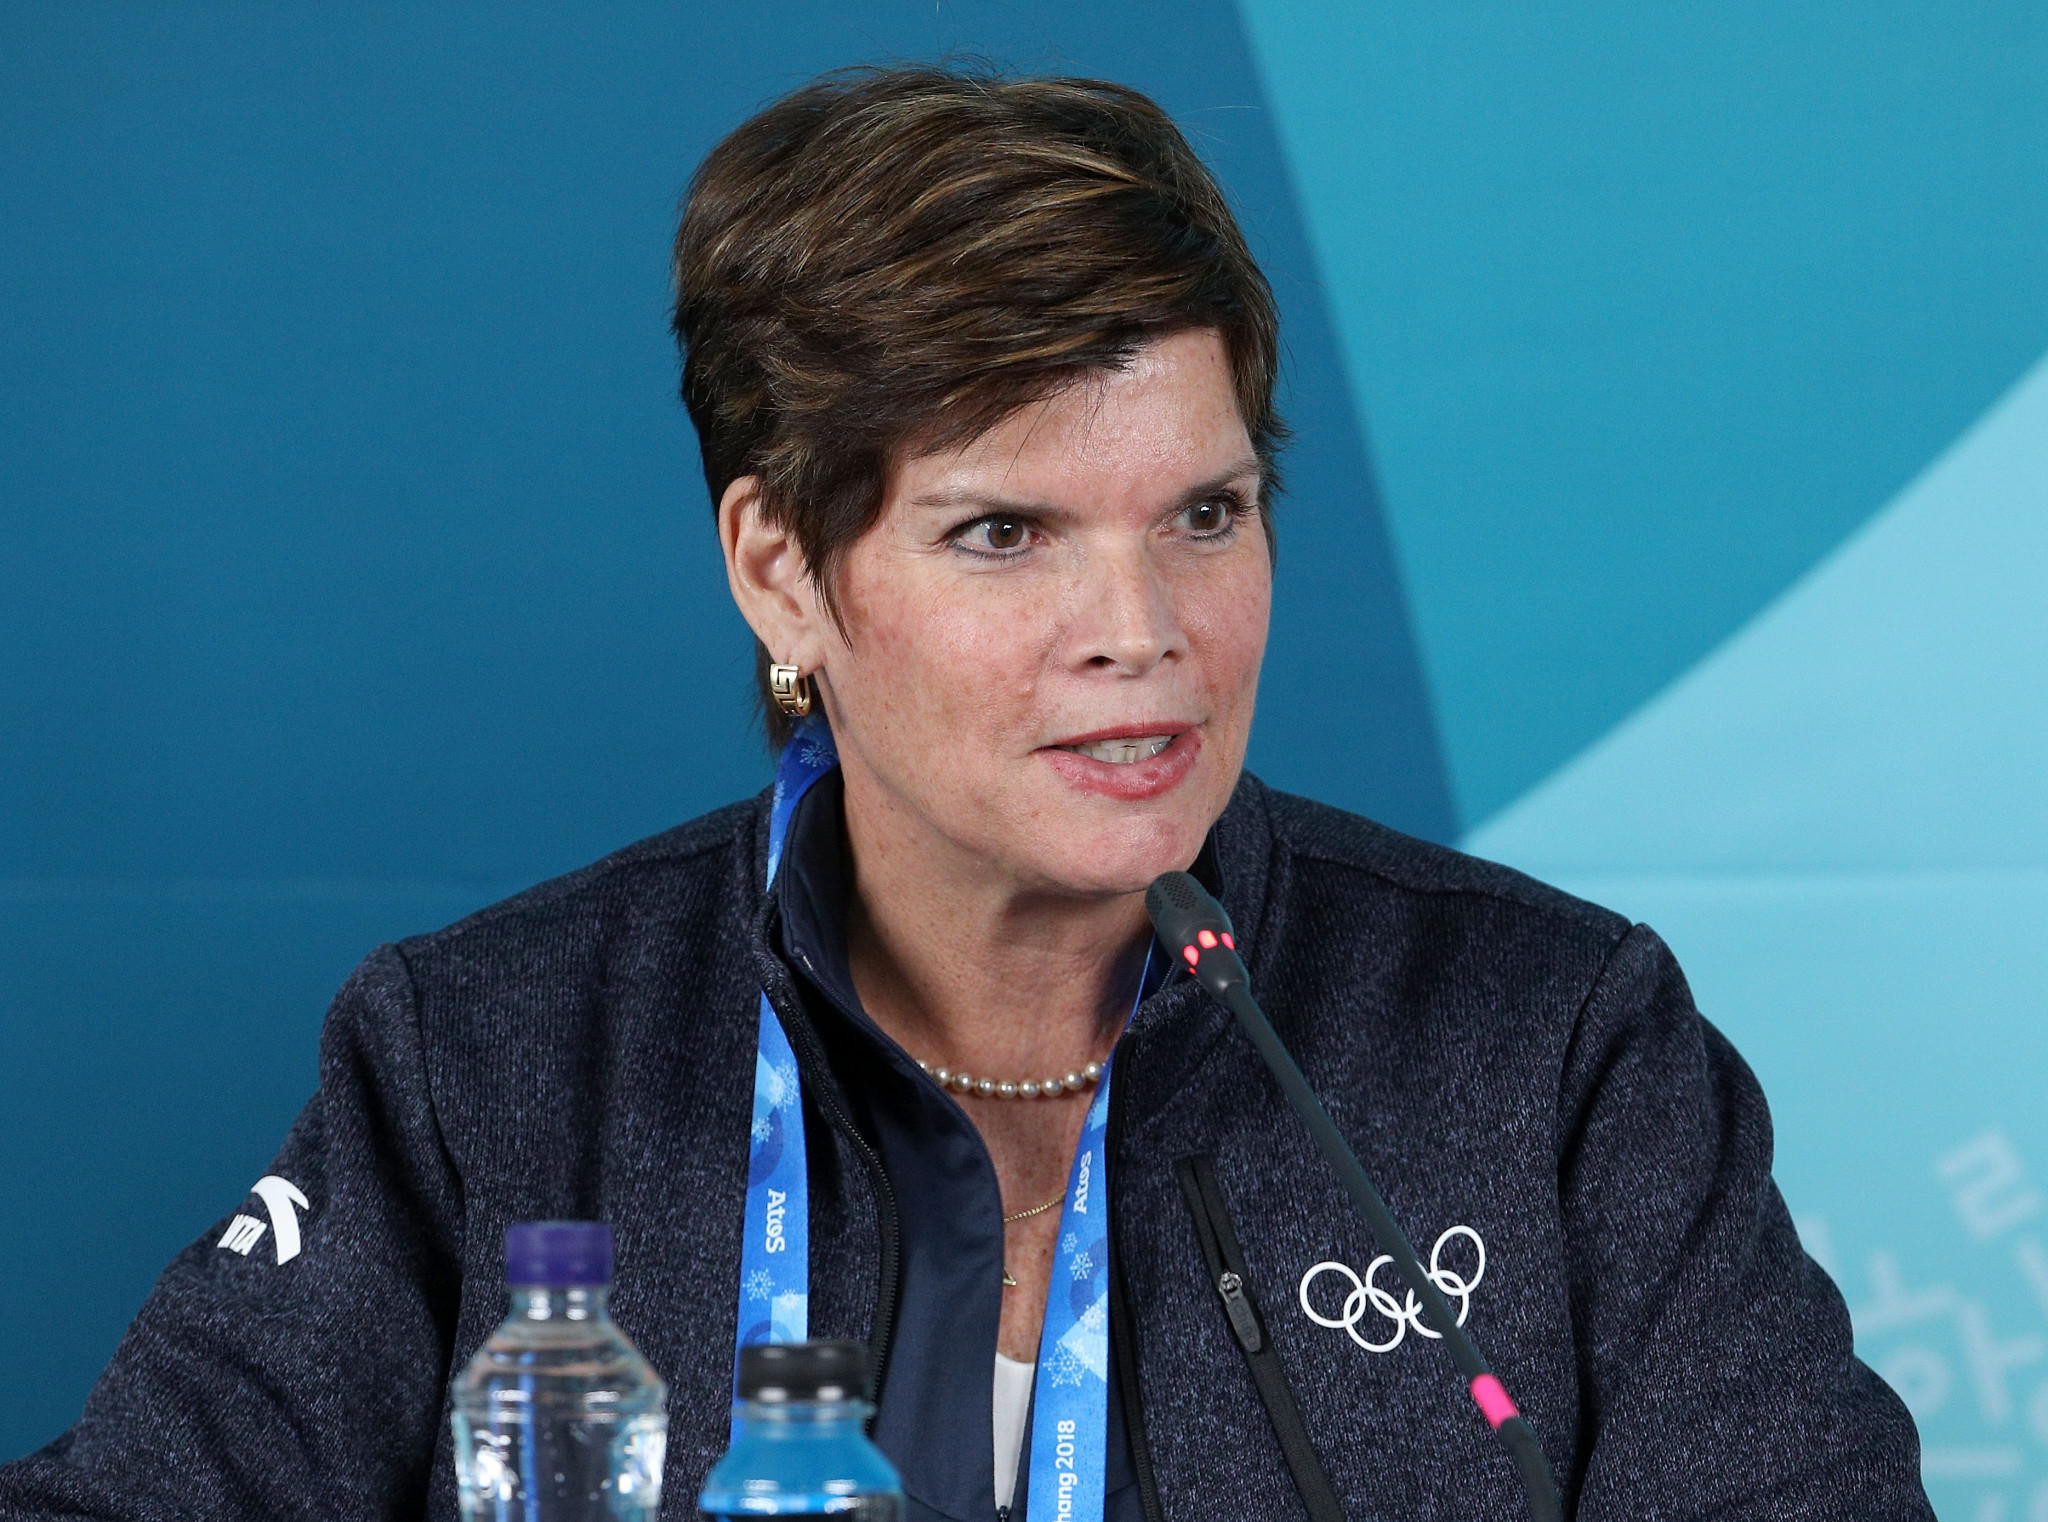 Nicole Hoevertsz chaired the panel tasked with assessing Russian eligibility ©Getty Images